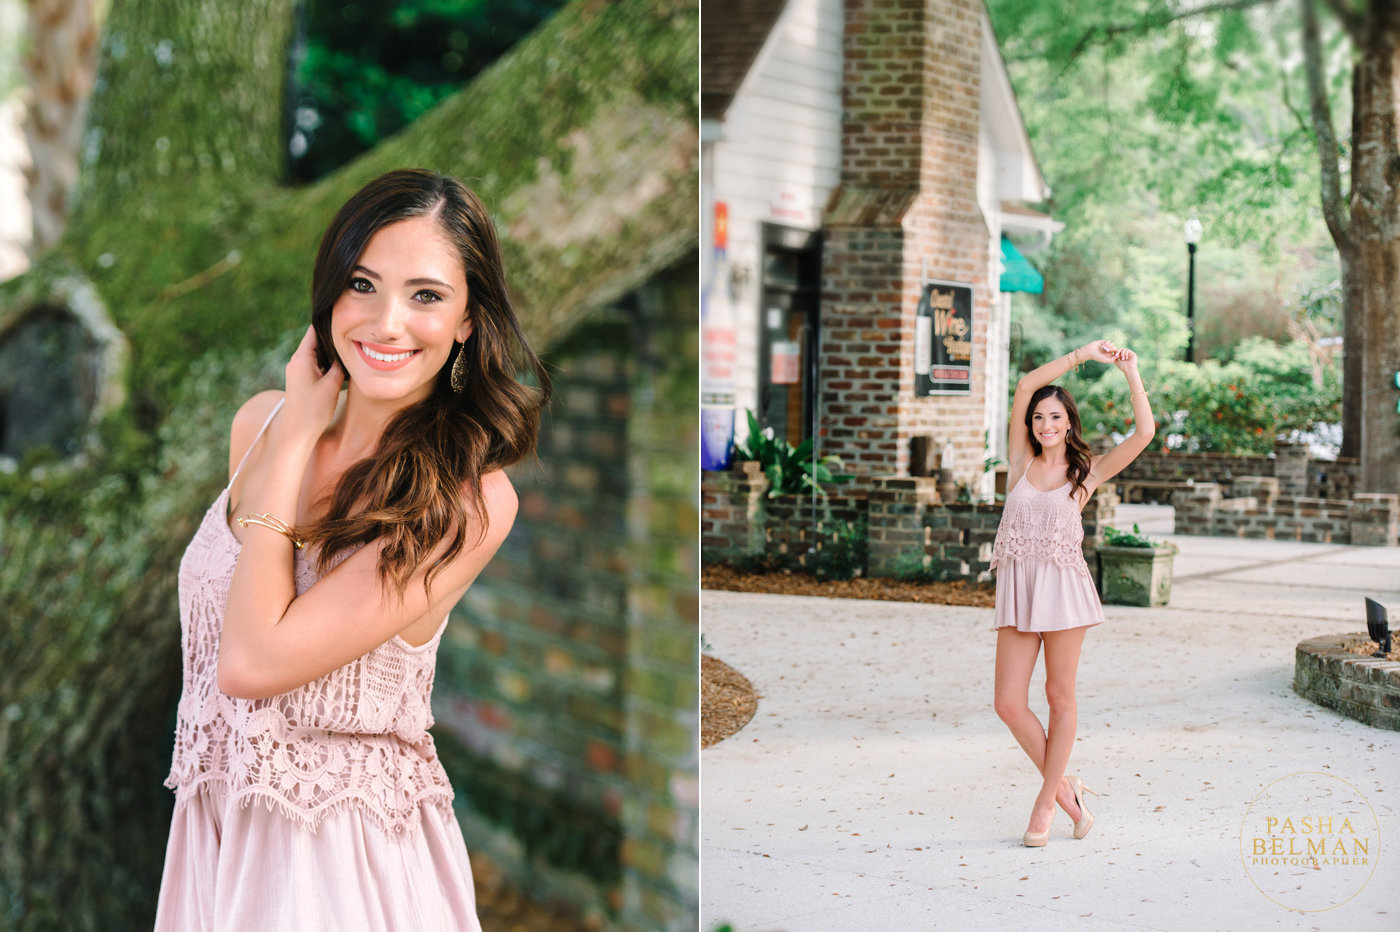 Senior Pictures | High School Senior Photography Ideas for Girls in Charleston SC